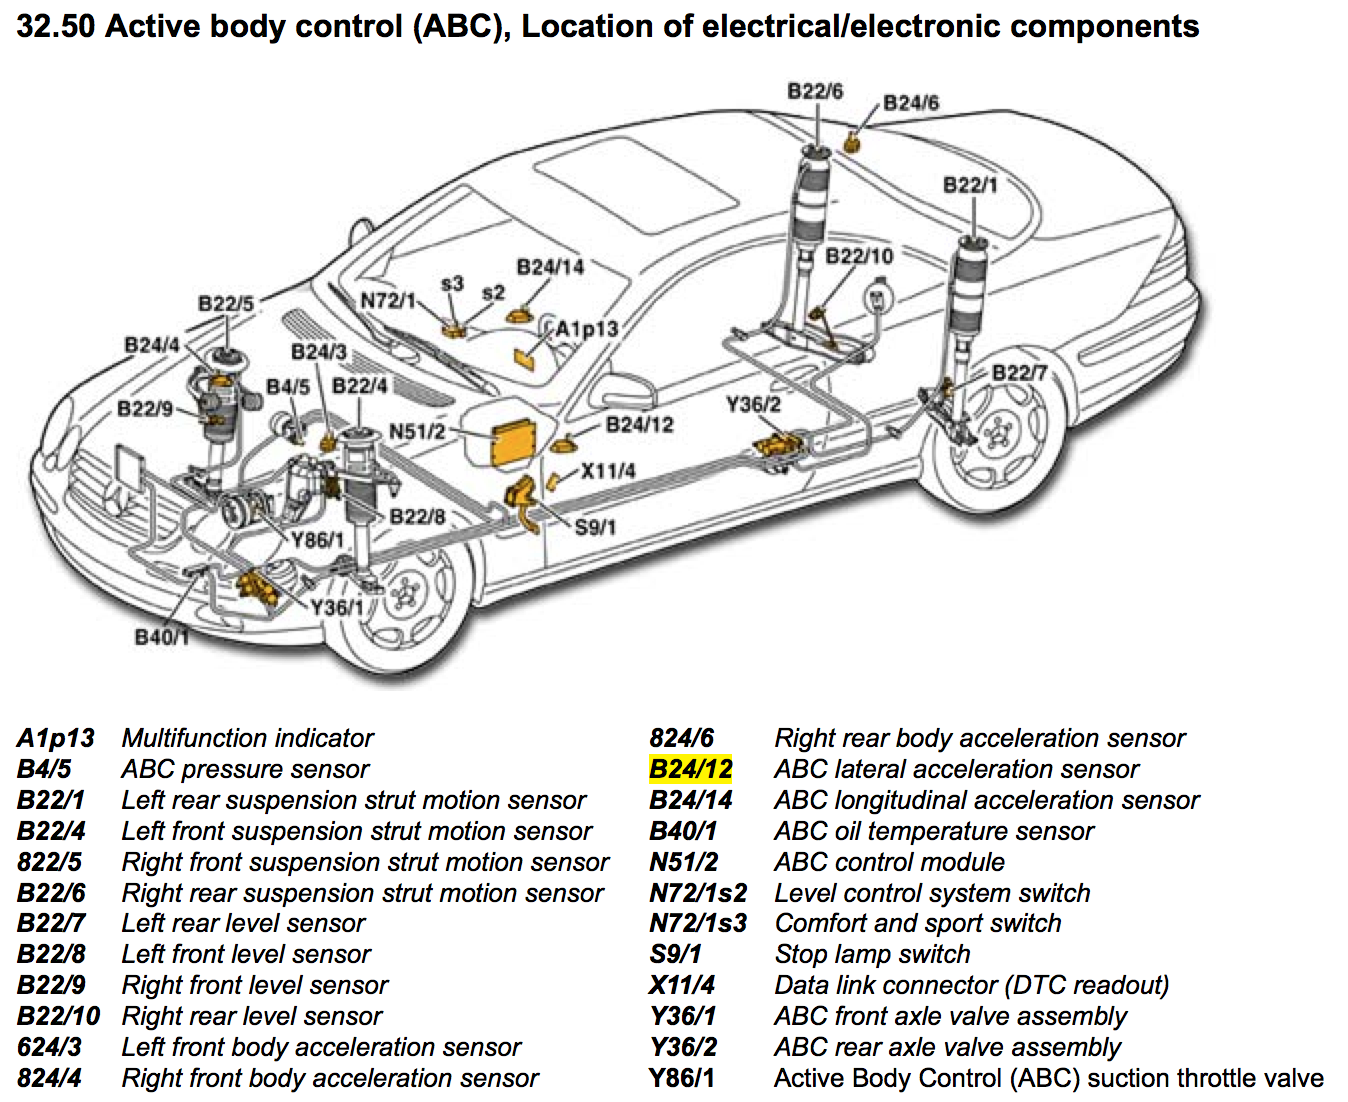 [WRG-1056] 2001 Mercedes E320 Fuse Diagram